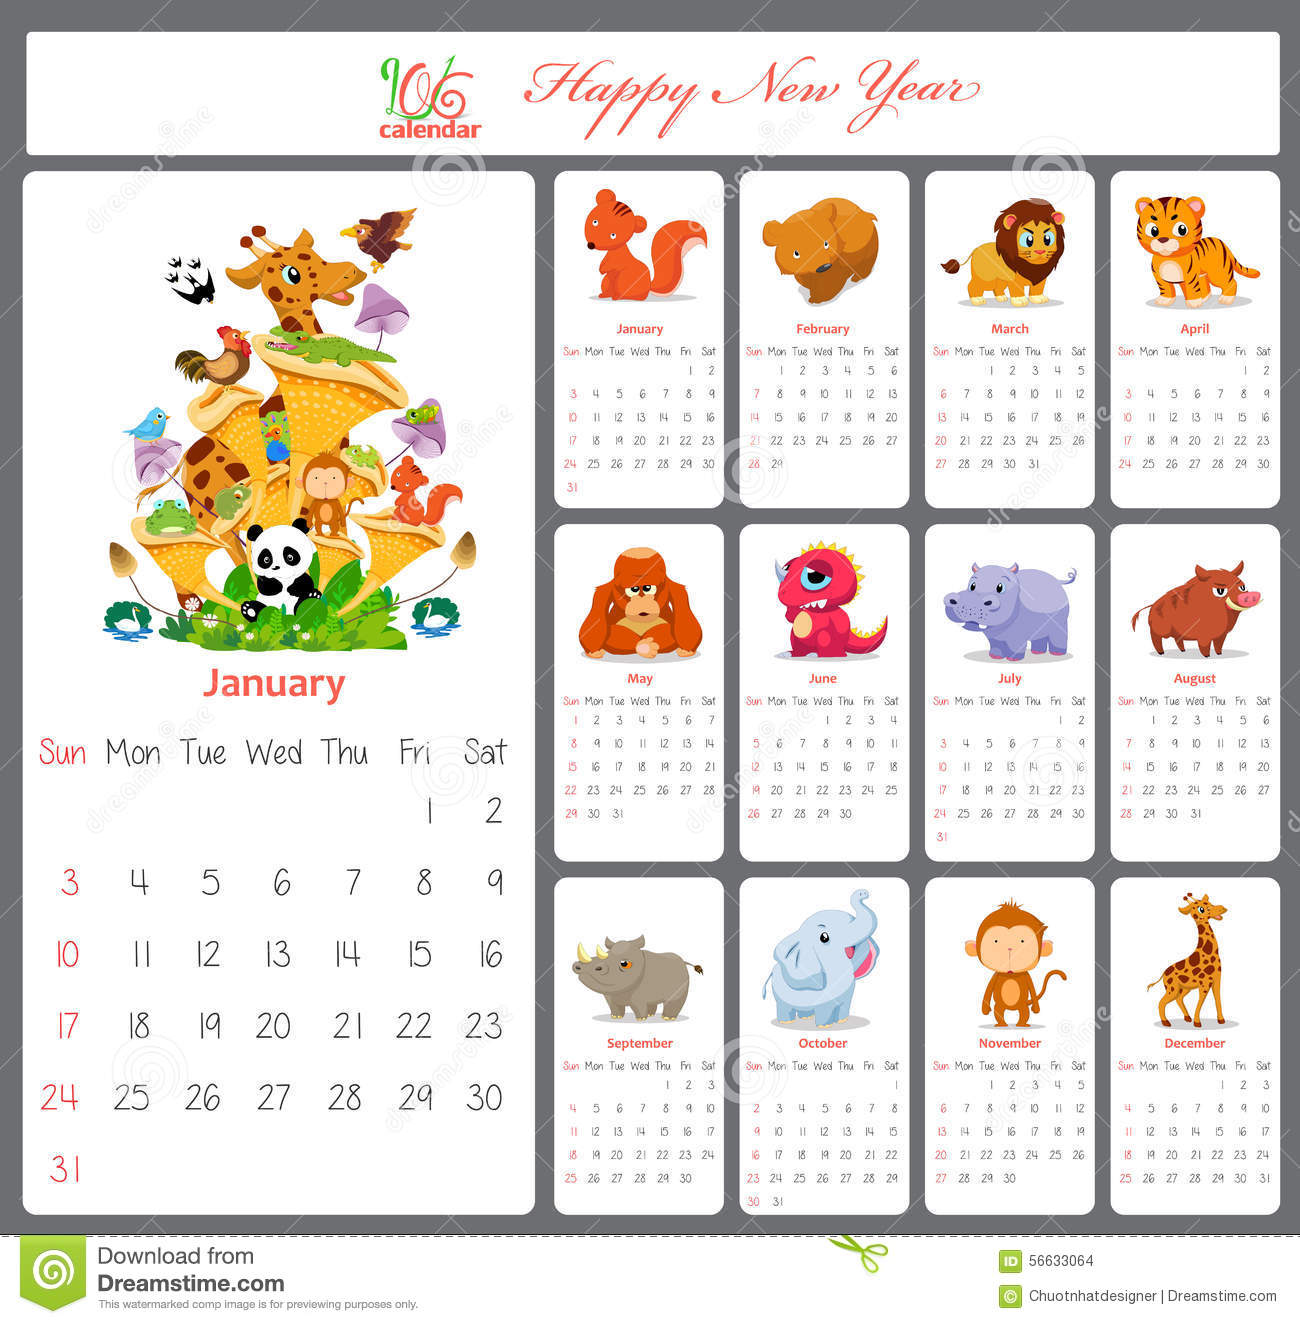 Blank Calendar Cute : Unusual calendar for with cartoon and funny animals